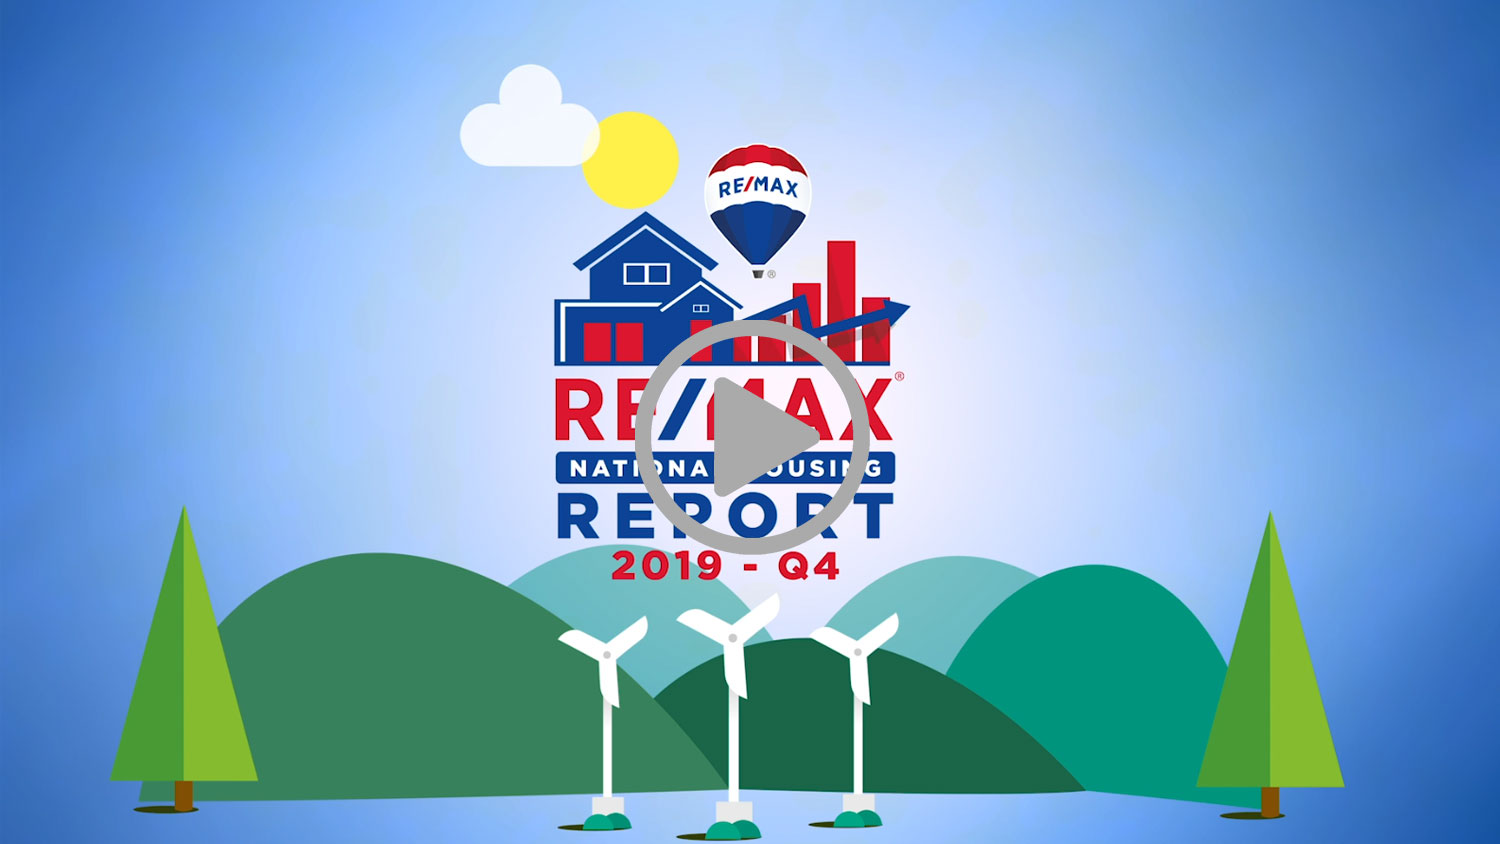 RE/MAX National Housing Report Q4 2019 A Slower Quarter than Usual